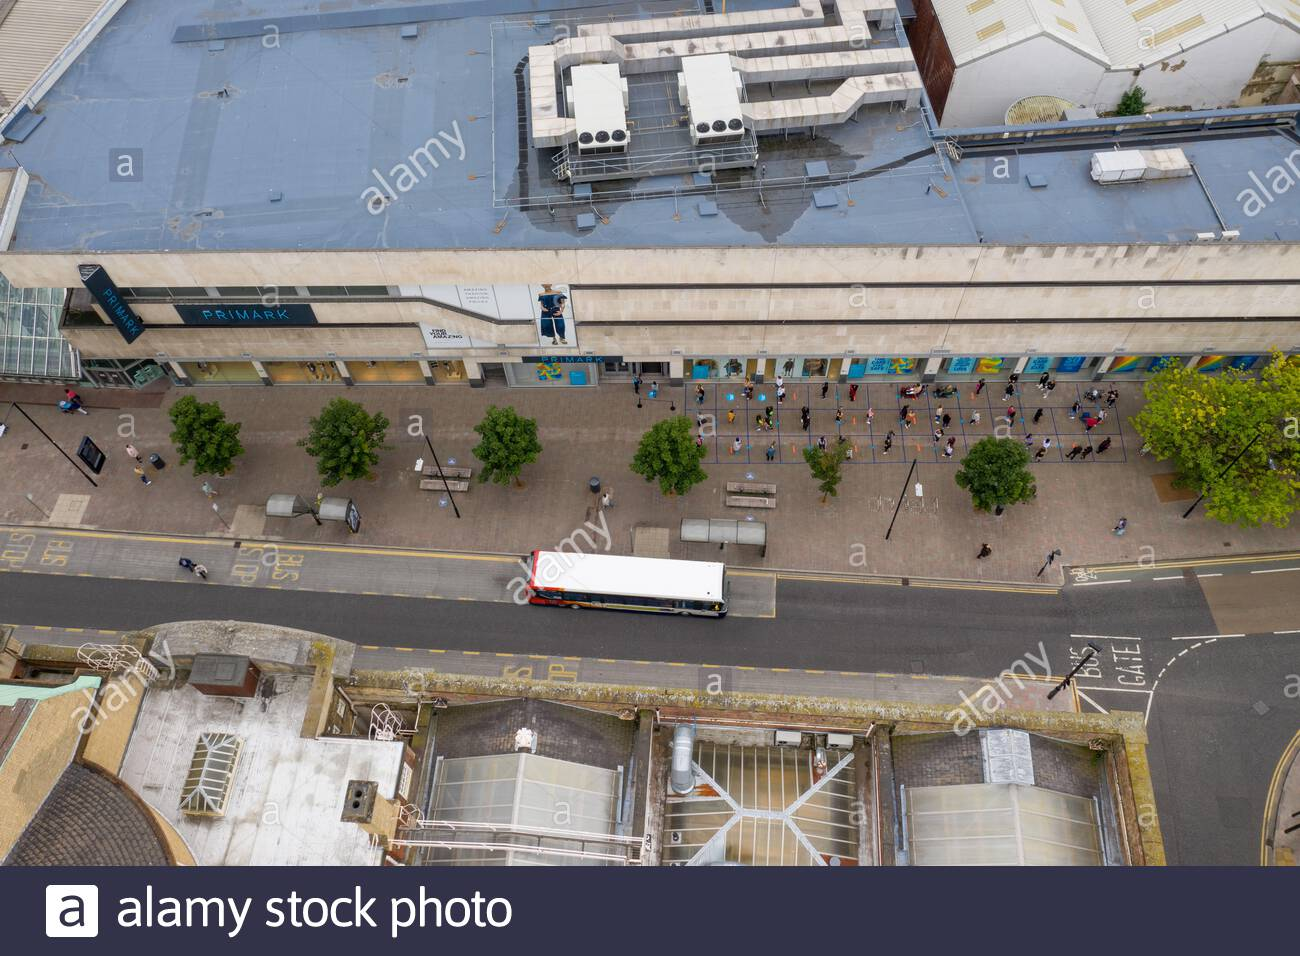 The first day the shops re-opened after the COVID-19 lockdown, social distancing is 2m and people are queue for entry to the shops. 15th June 2020 Stock Photo